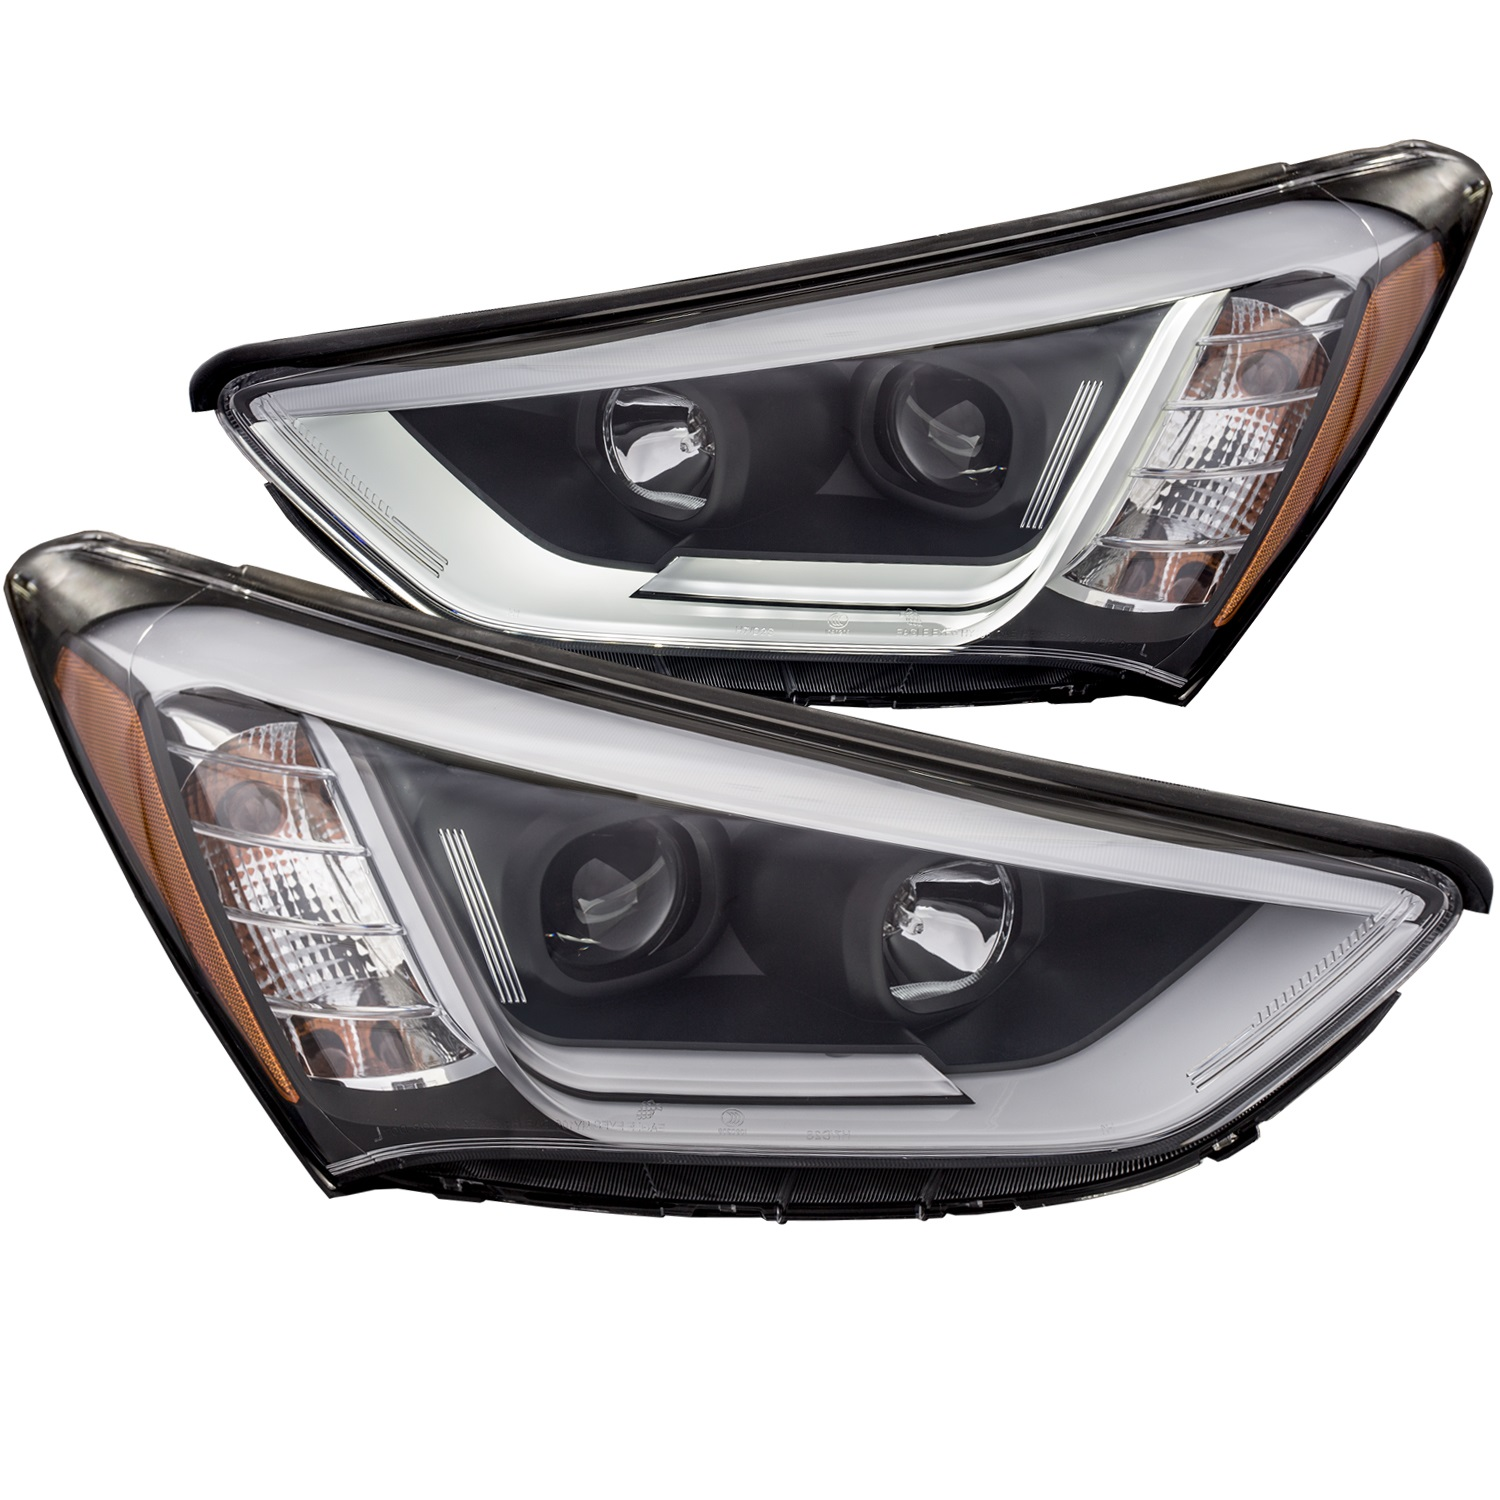 Anzo USA 111310 Projector Headlight Set Fits 13-15 Santa Fe